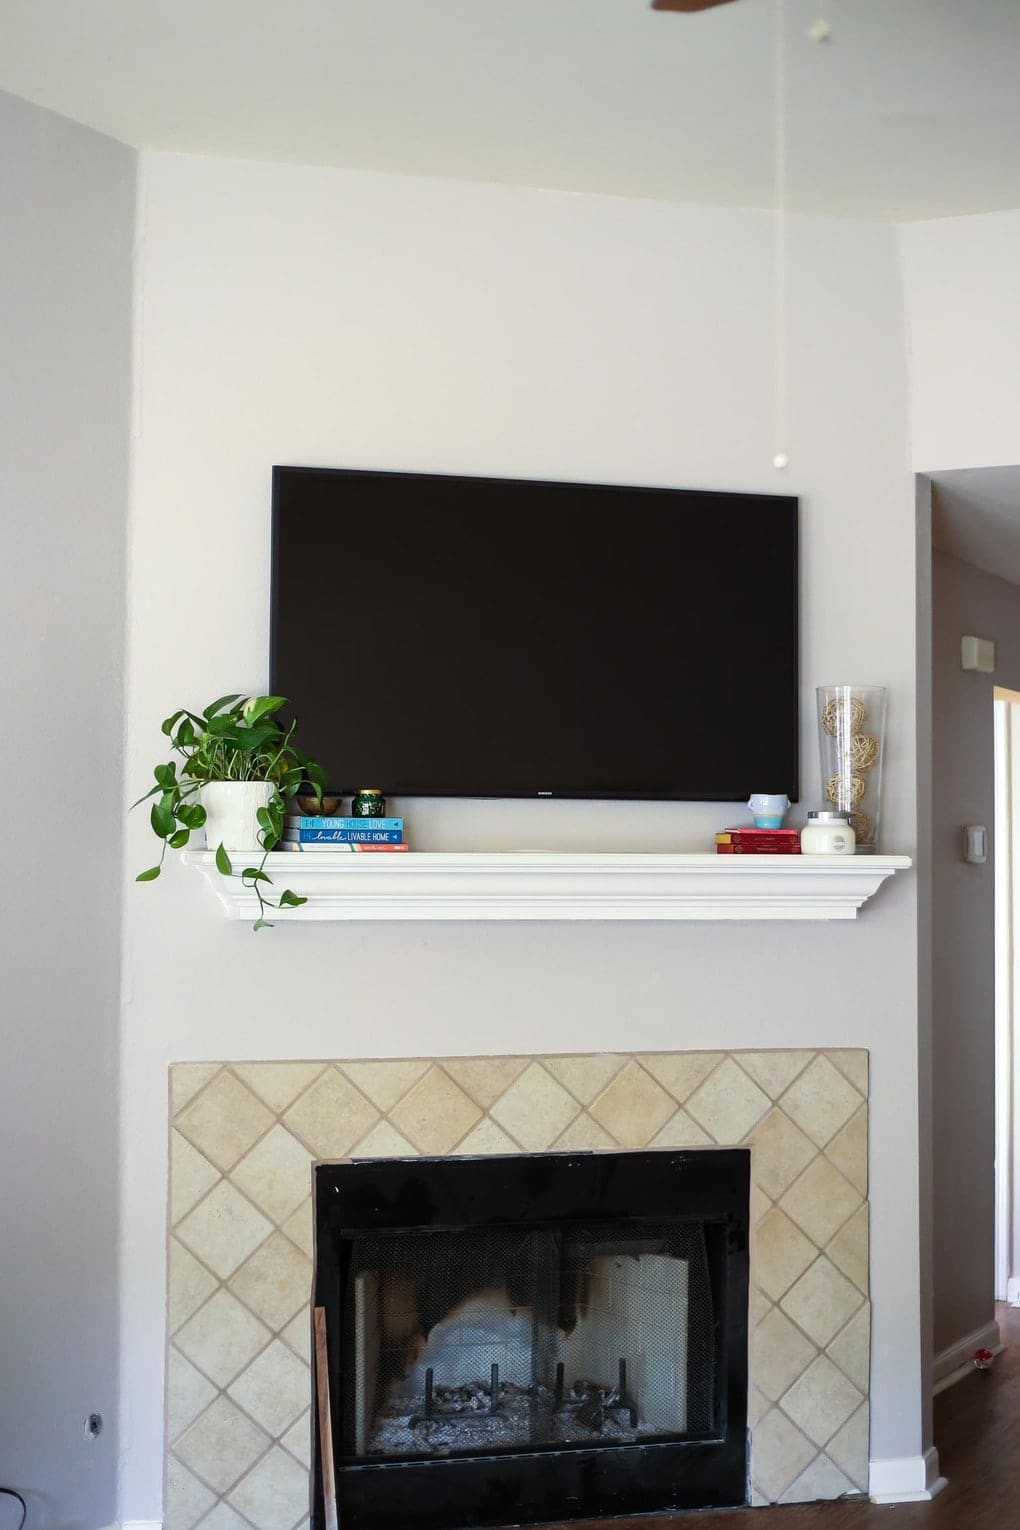 How To Decorate Fireplace 7 Tips For Decorating A Mantel With A Television Love Renovations